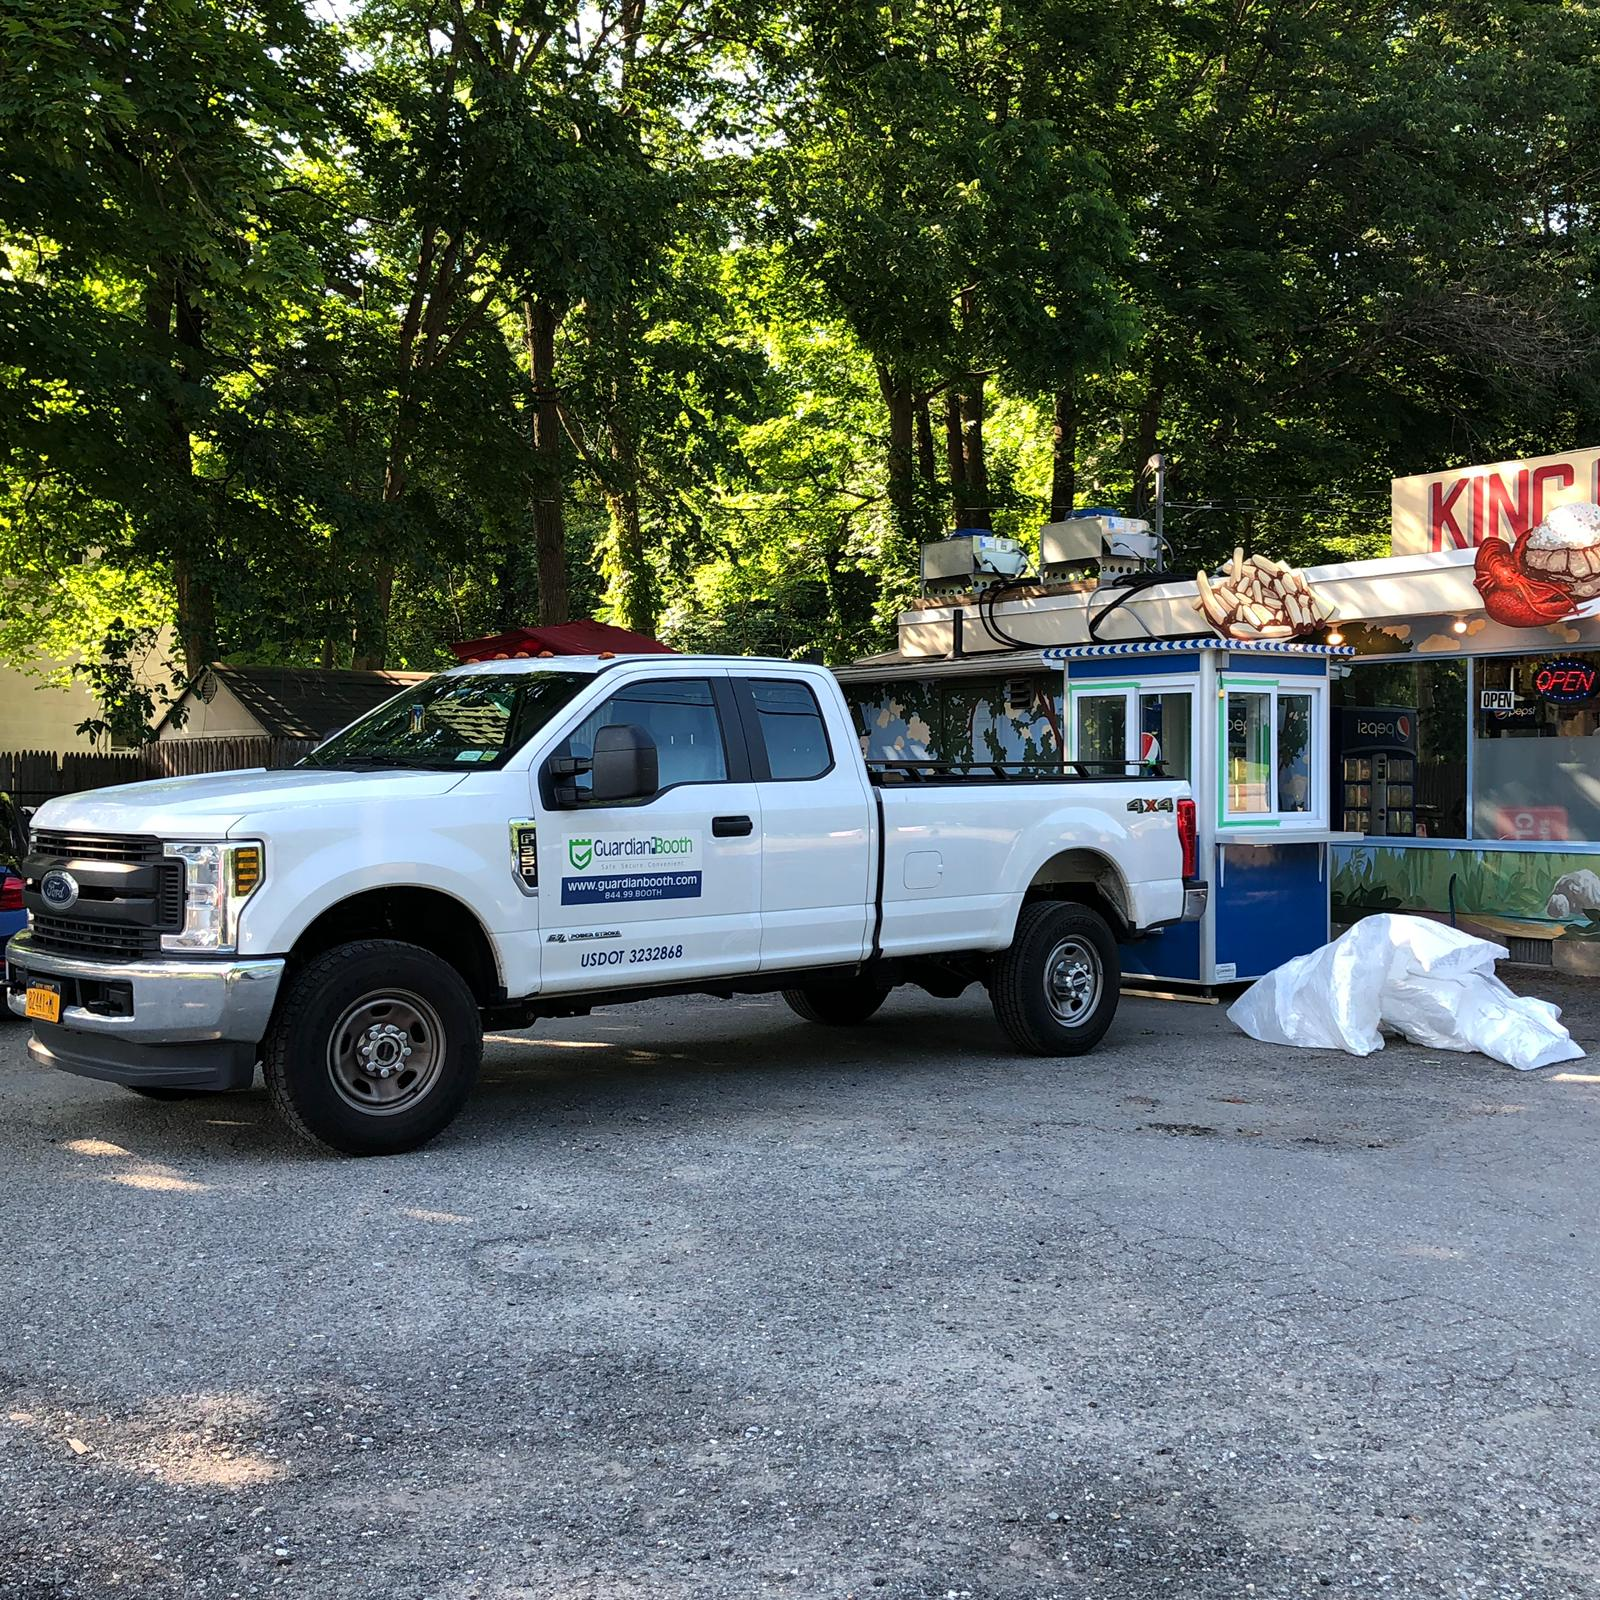 4x4 Guardian Booth Delivered to Katonah, NY with Exterior Counter